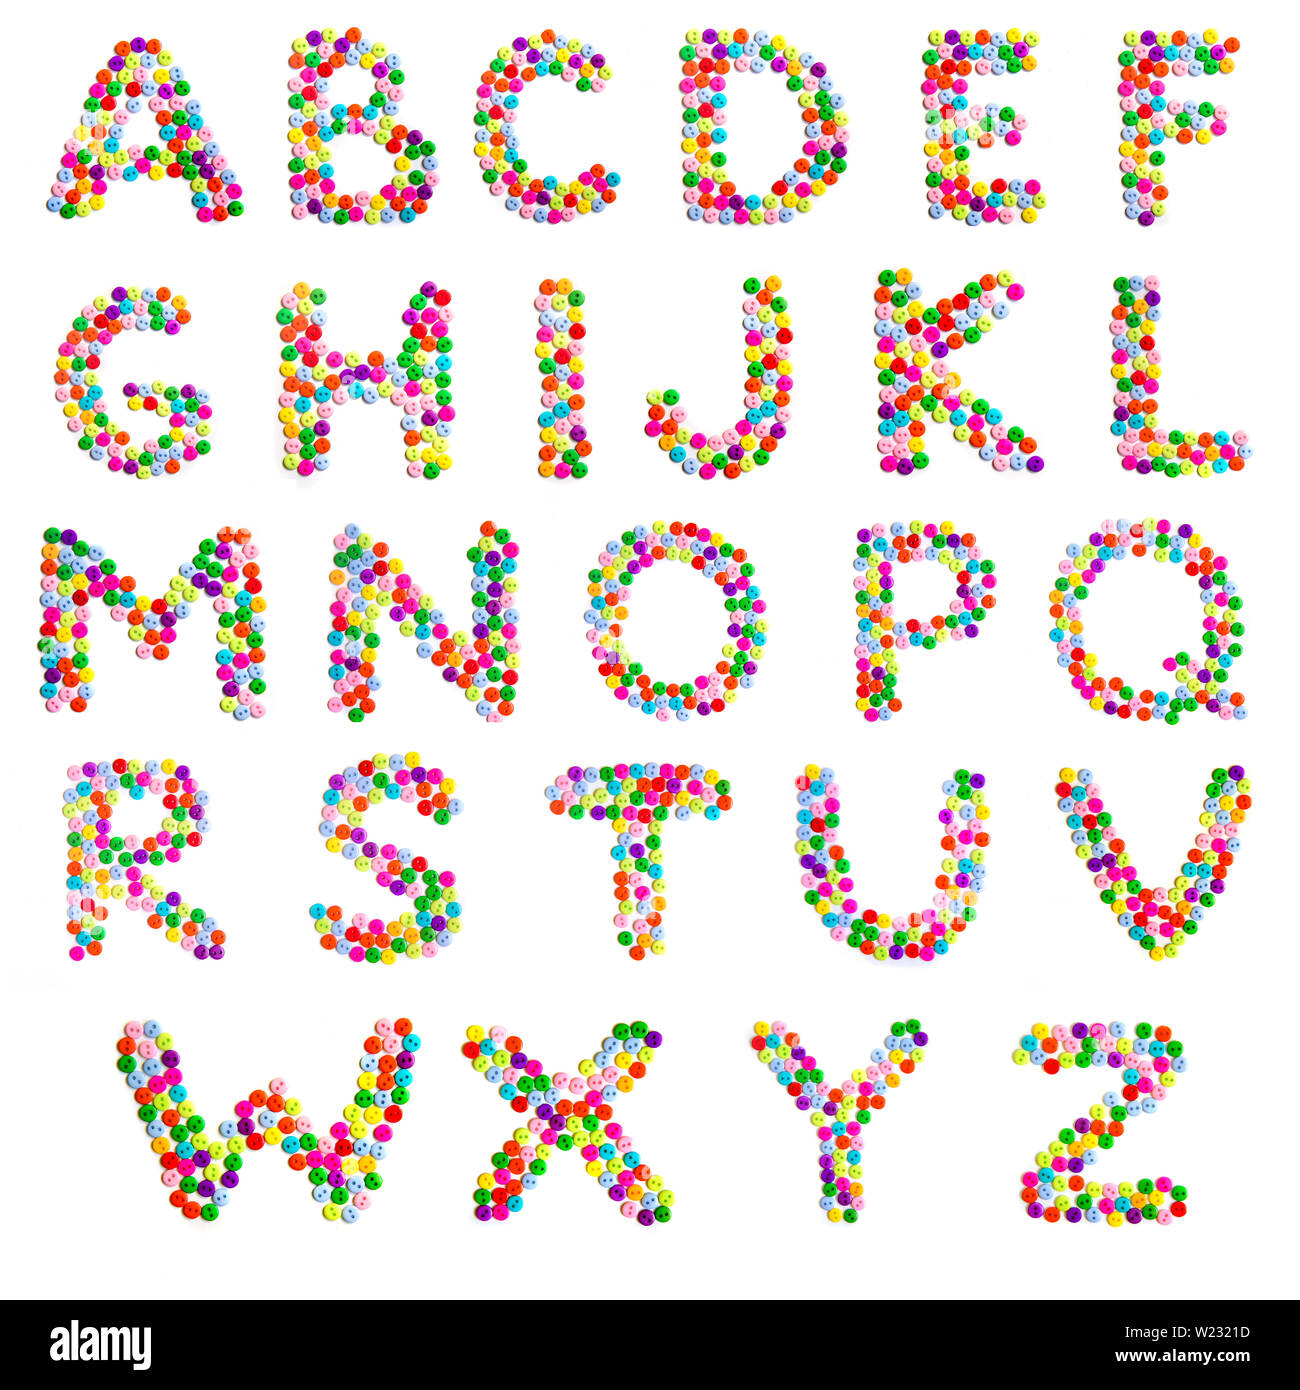 Alphabet, letters A-Z English alphabet of many small bright